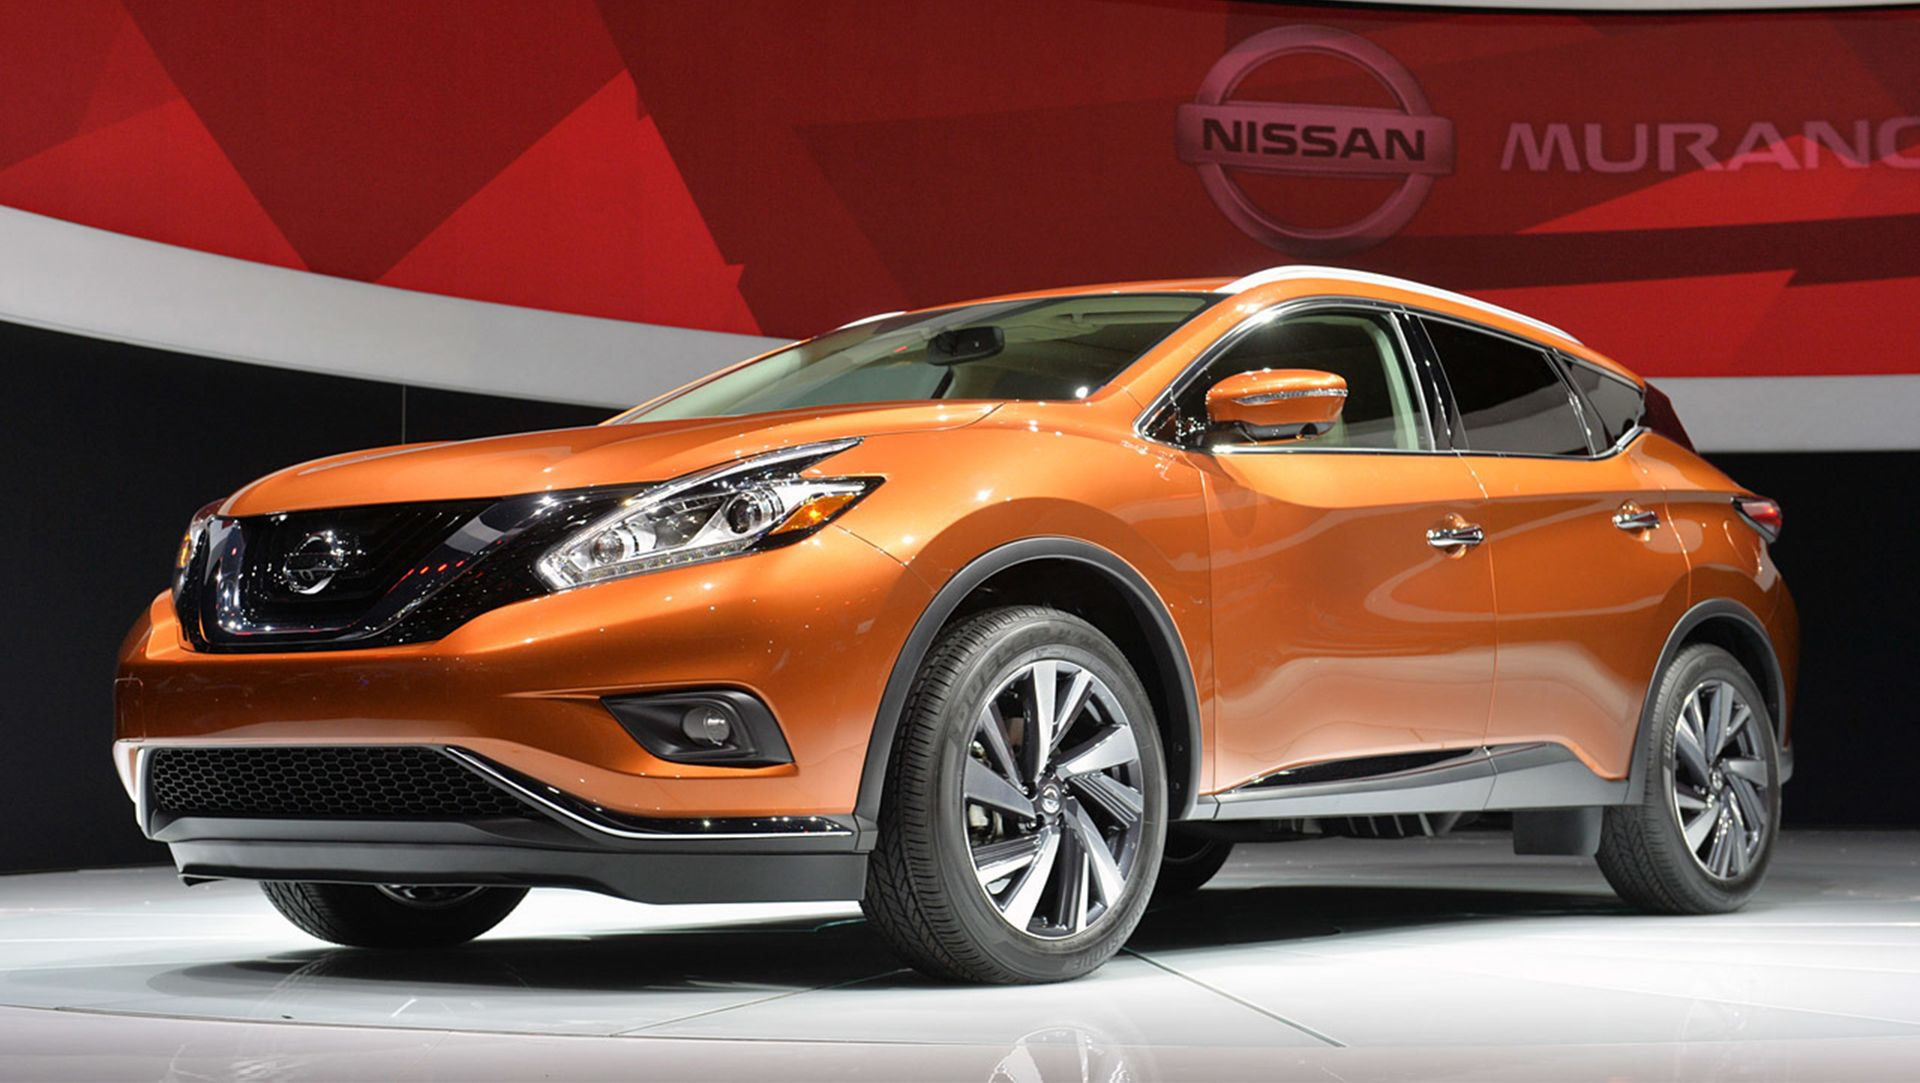 2017 Nissan Murano Hybrid Mpg And Price Http Fordcarsi